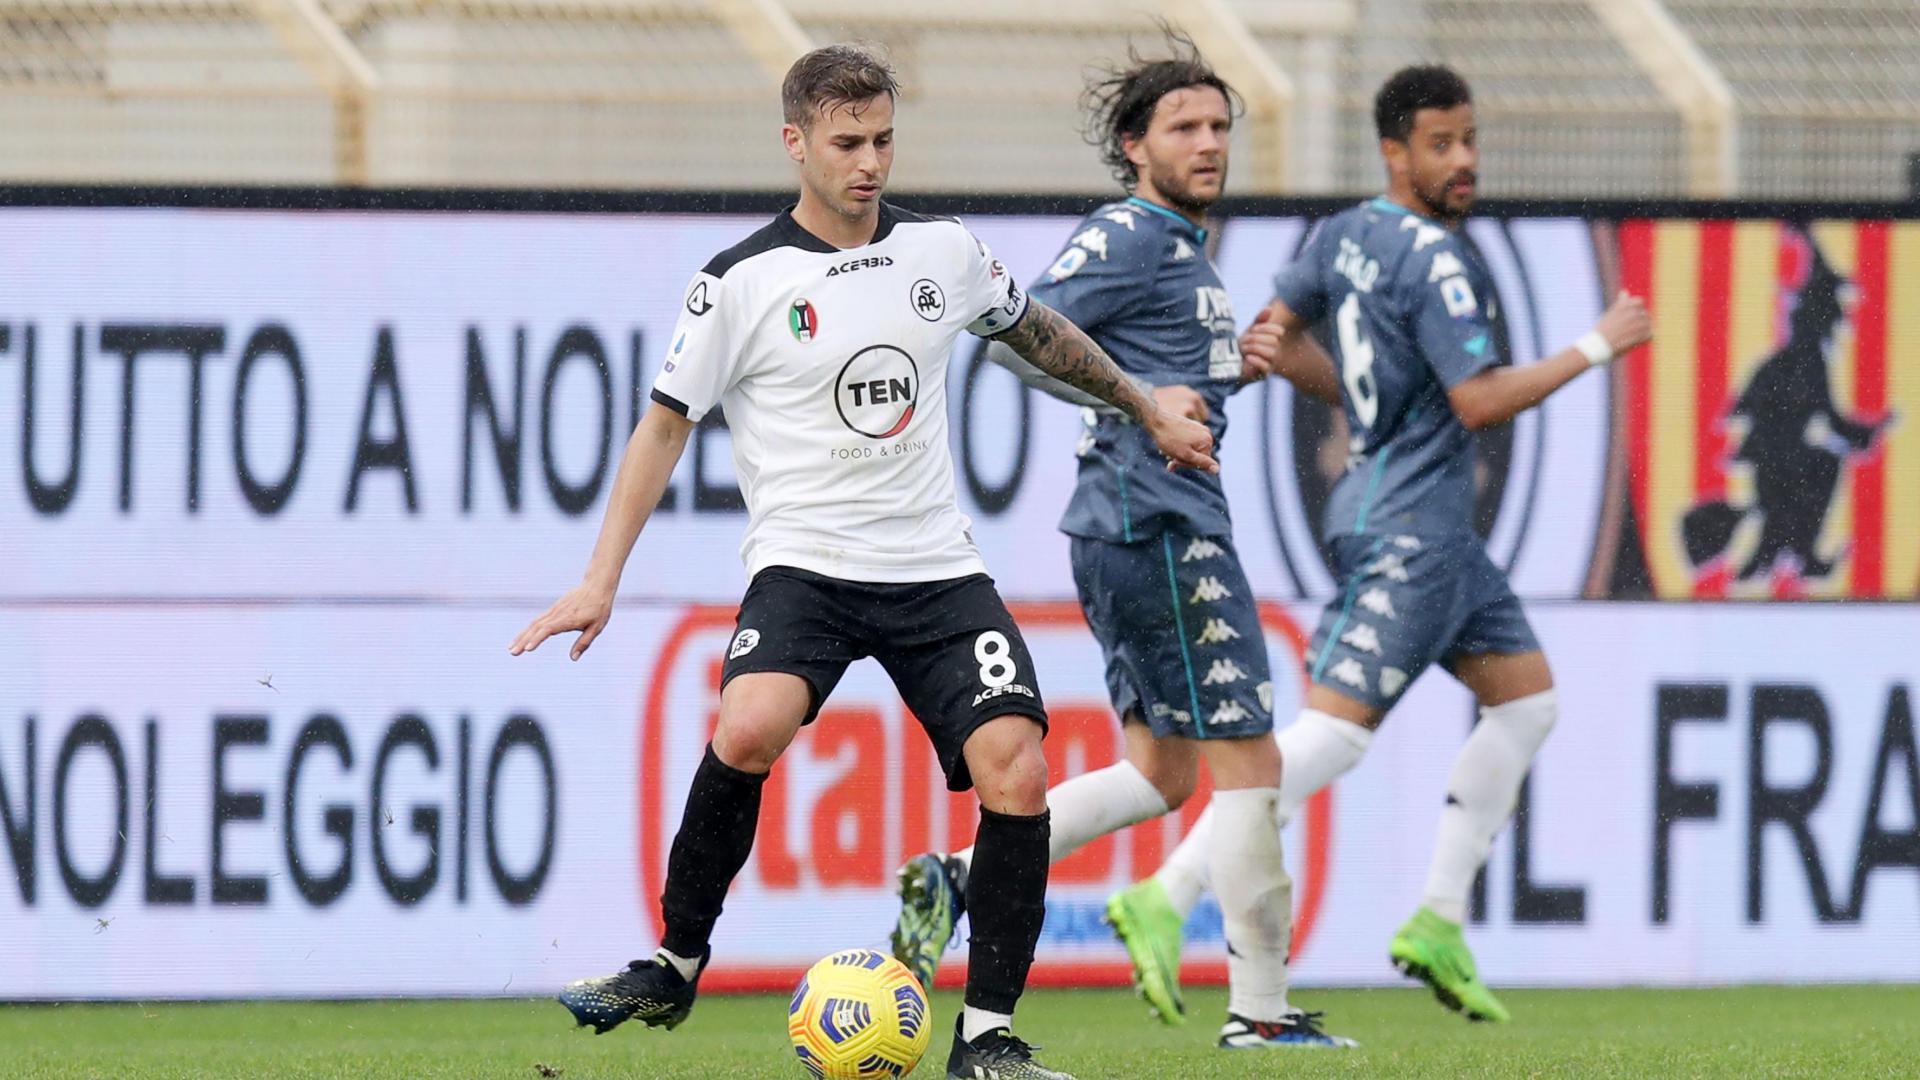 SPEZIA-BENEVENTO 1-1: gli highlights